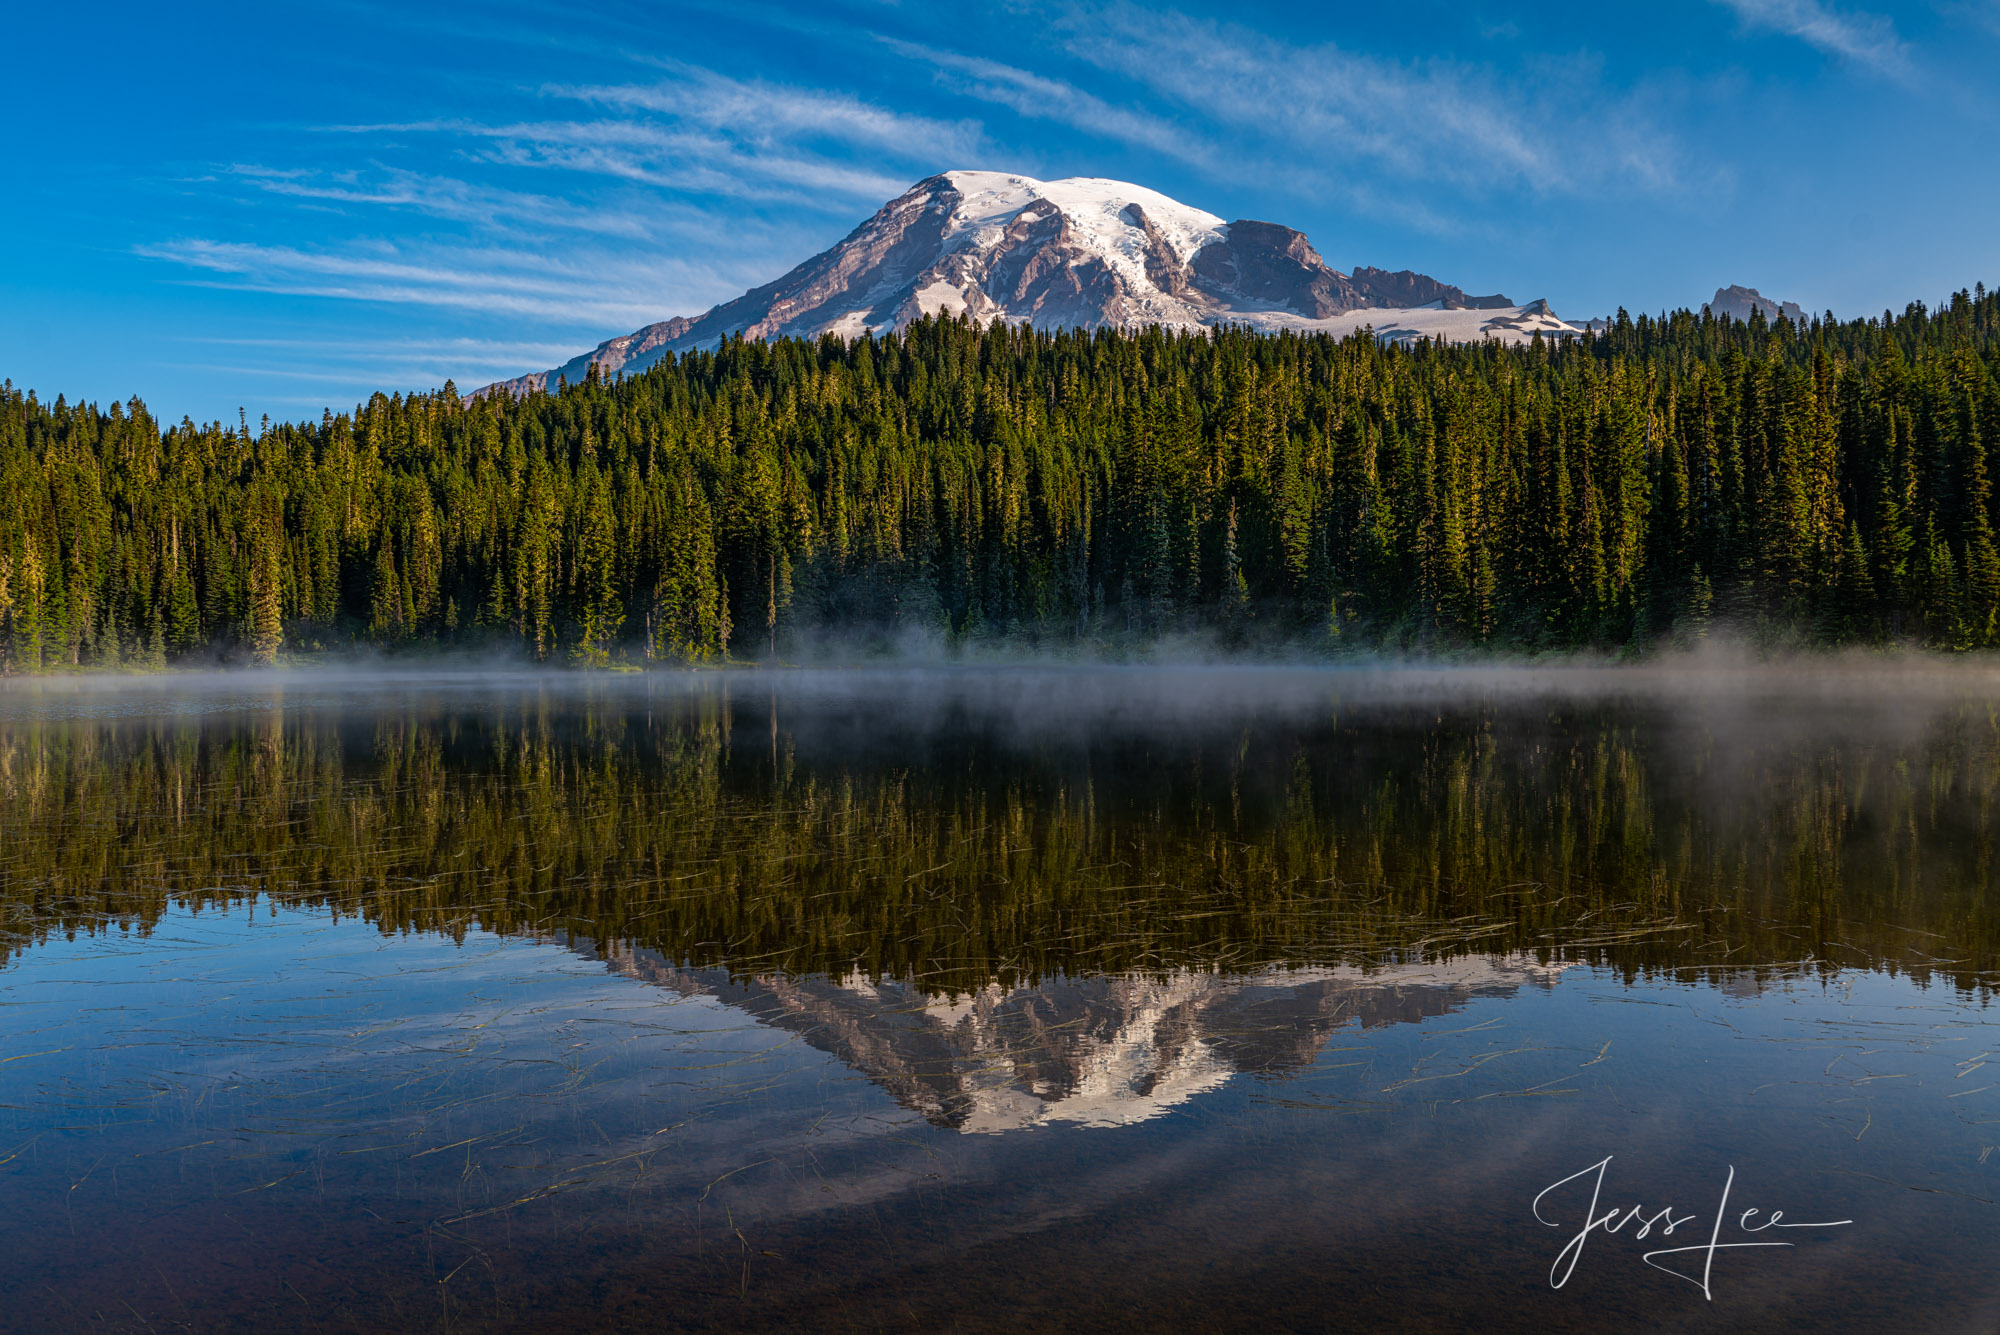 Beautify  your space  with Jess Lee's limited edition photography print, Rainier Reflection, from his Mount Rainier Gallery ....